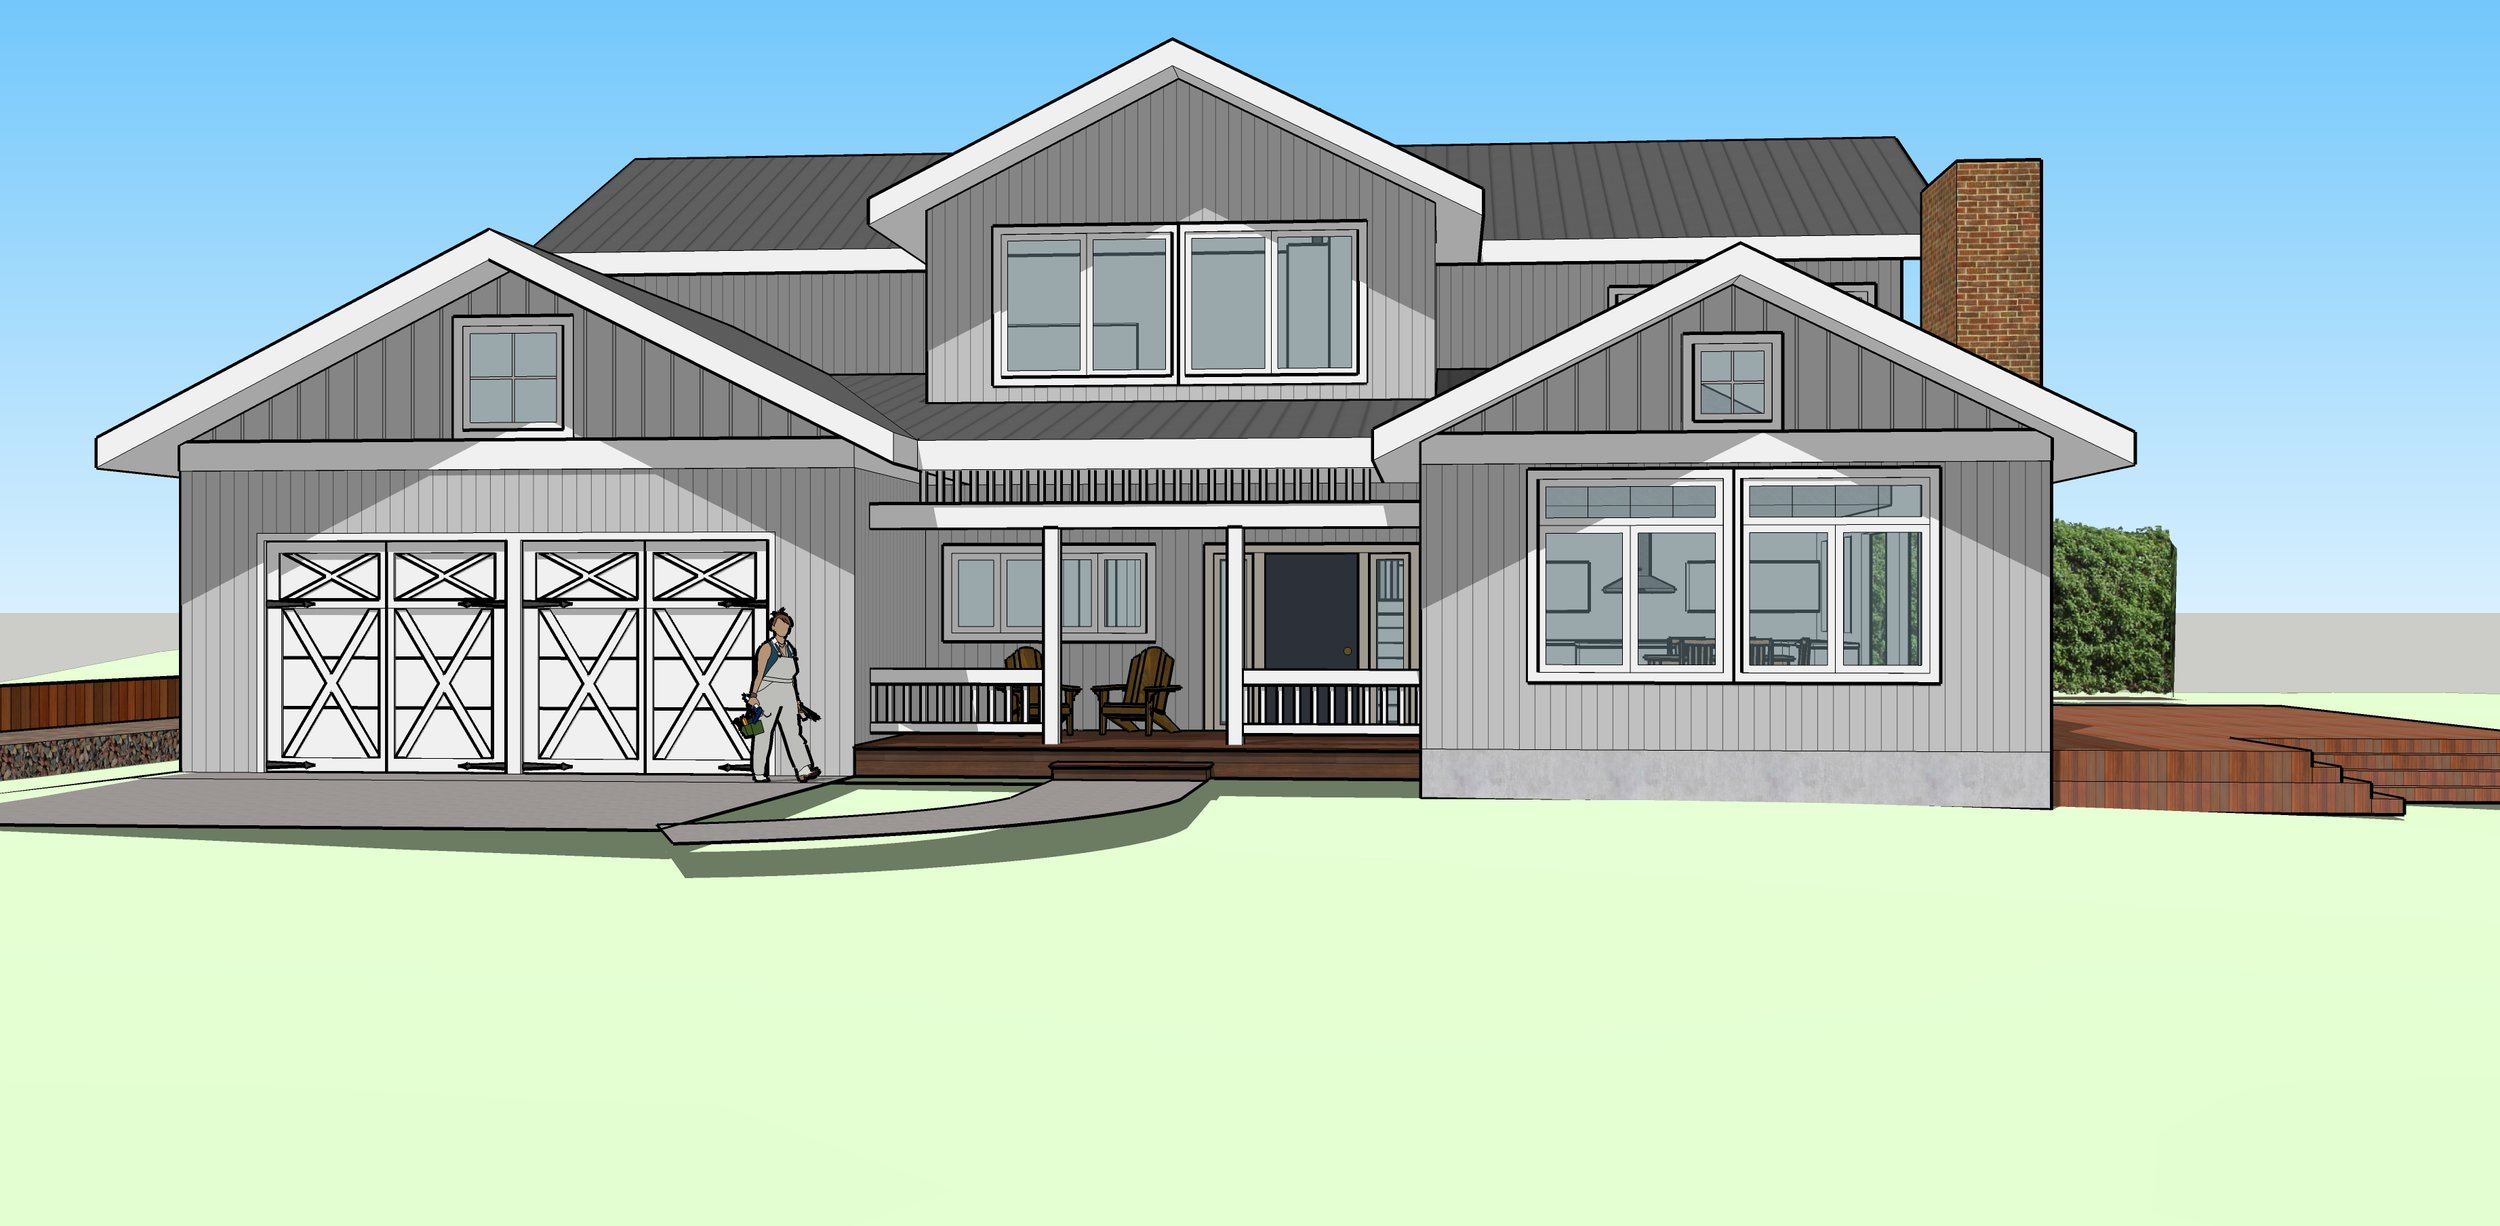 ARCHITECTURAL CONCEPT FOR SECOND STORY ADDITION.